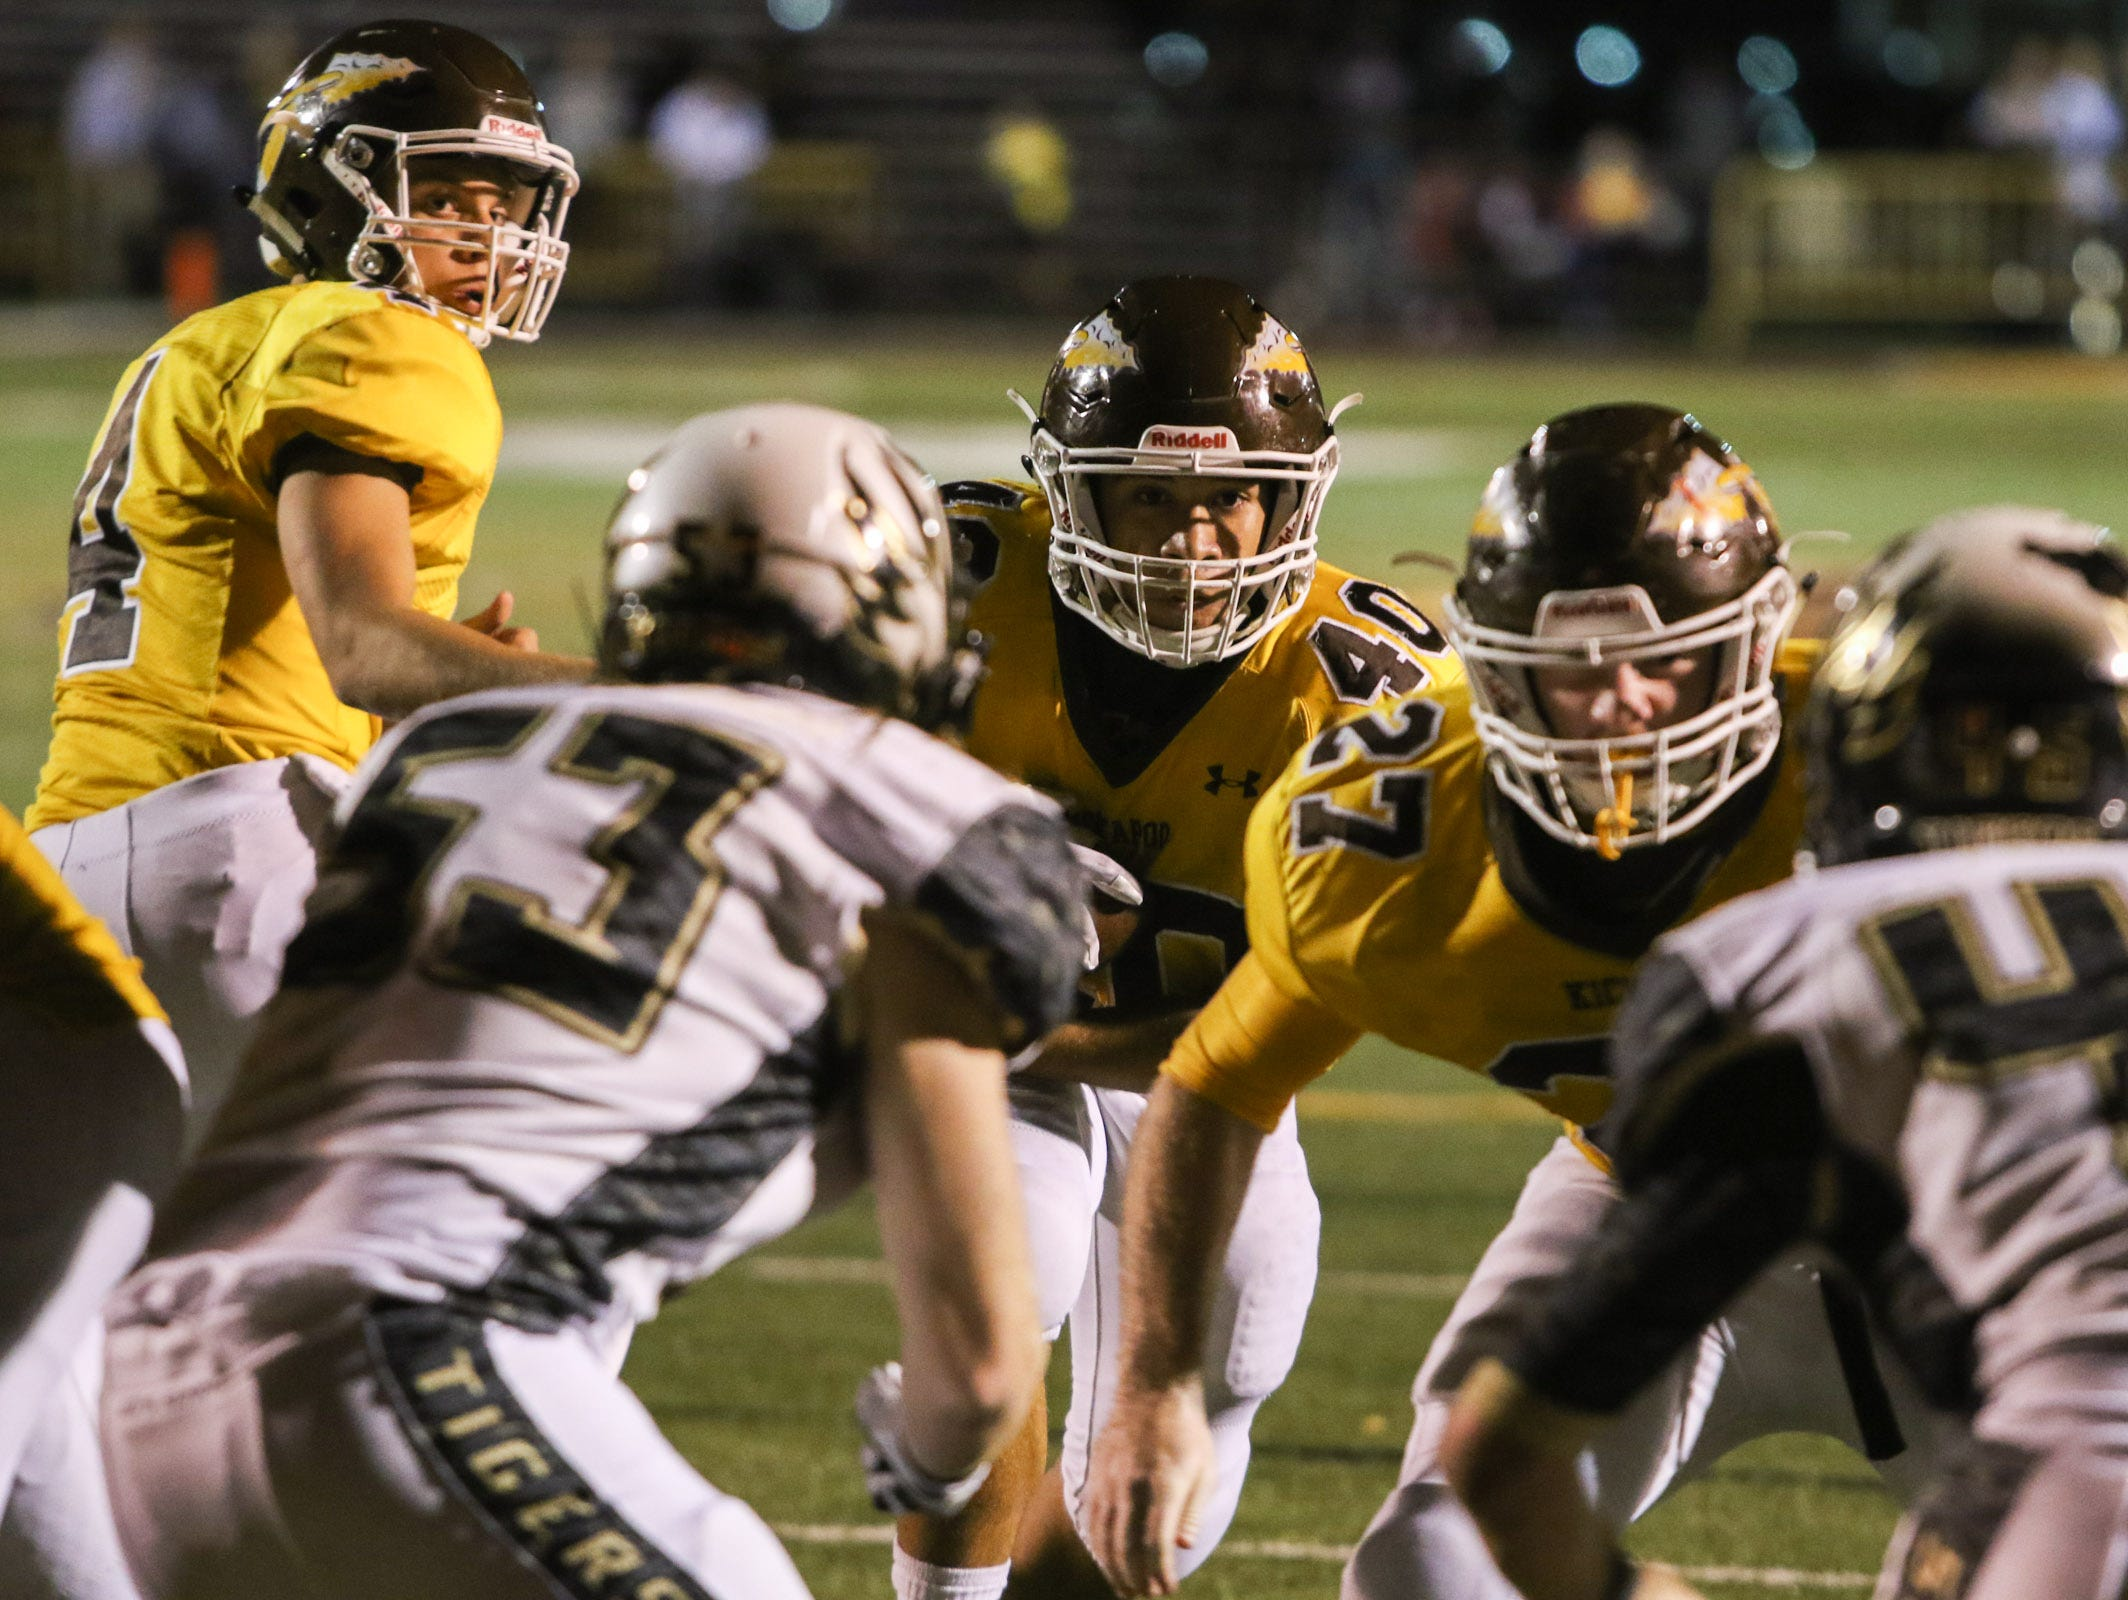 Kickapoo High School running back Malachi Stout looks to the end zone in the second half against Lee's Summit High School Friday, October 23, 2015. Jason Connel / For the News-Leader